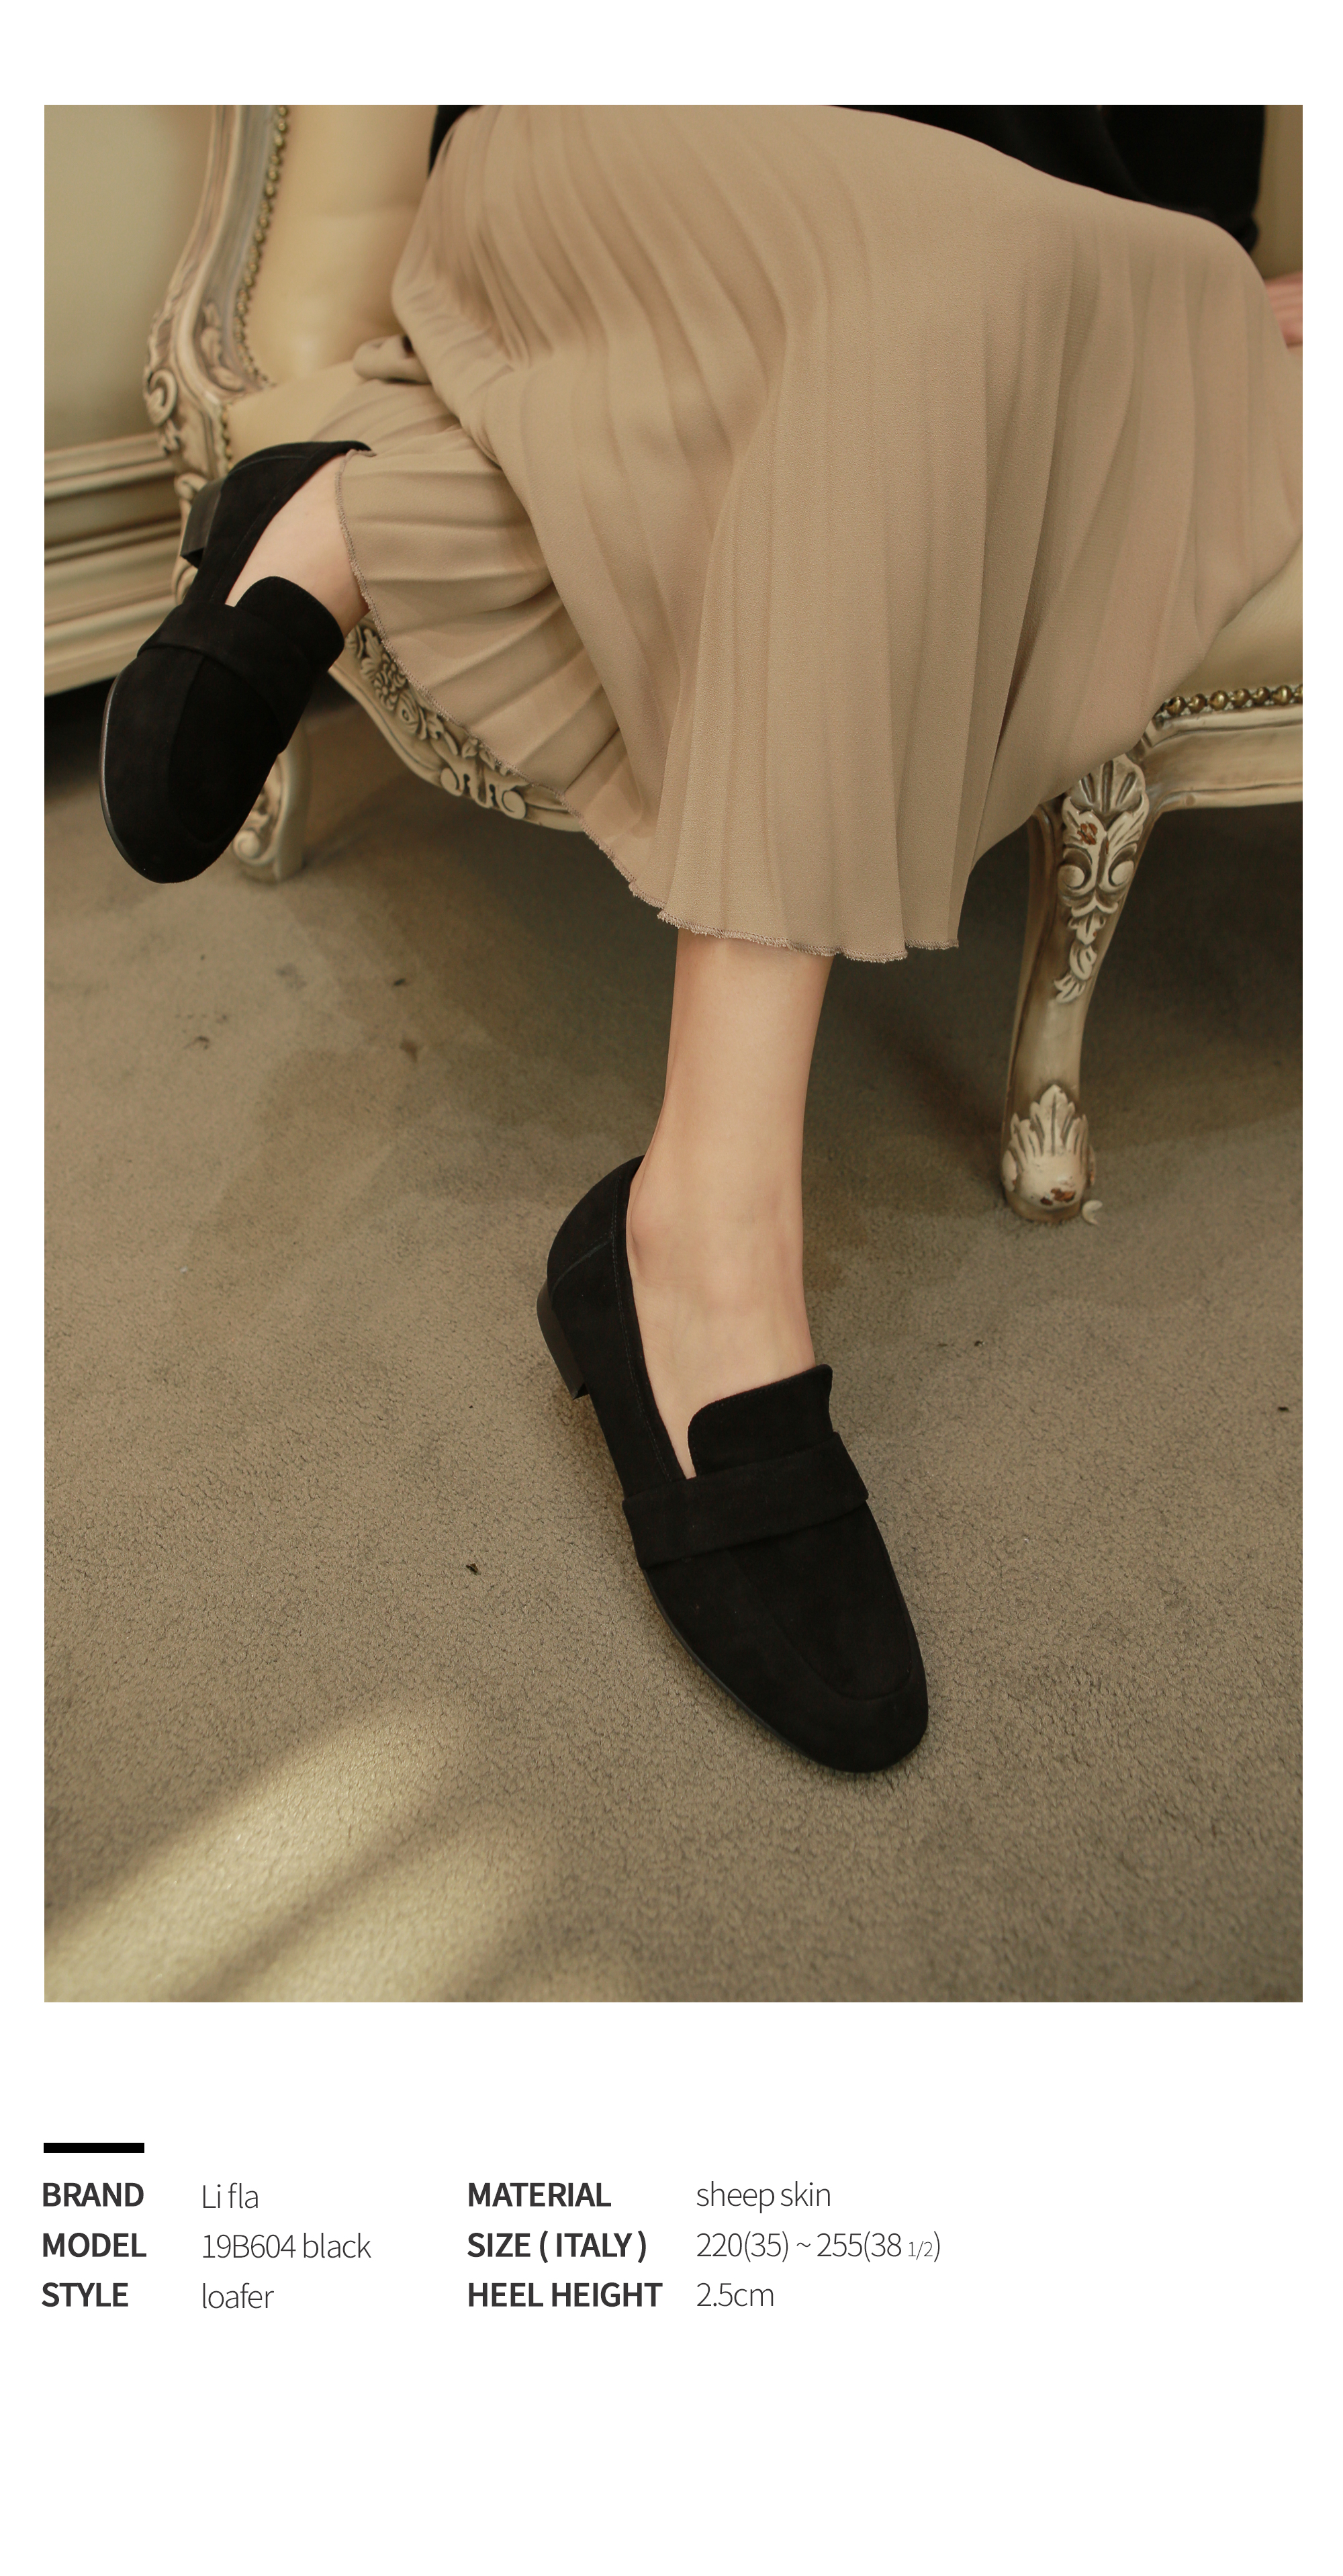 리플라(LI FLA) 19B604 black loafer